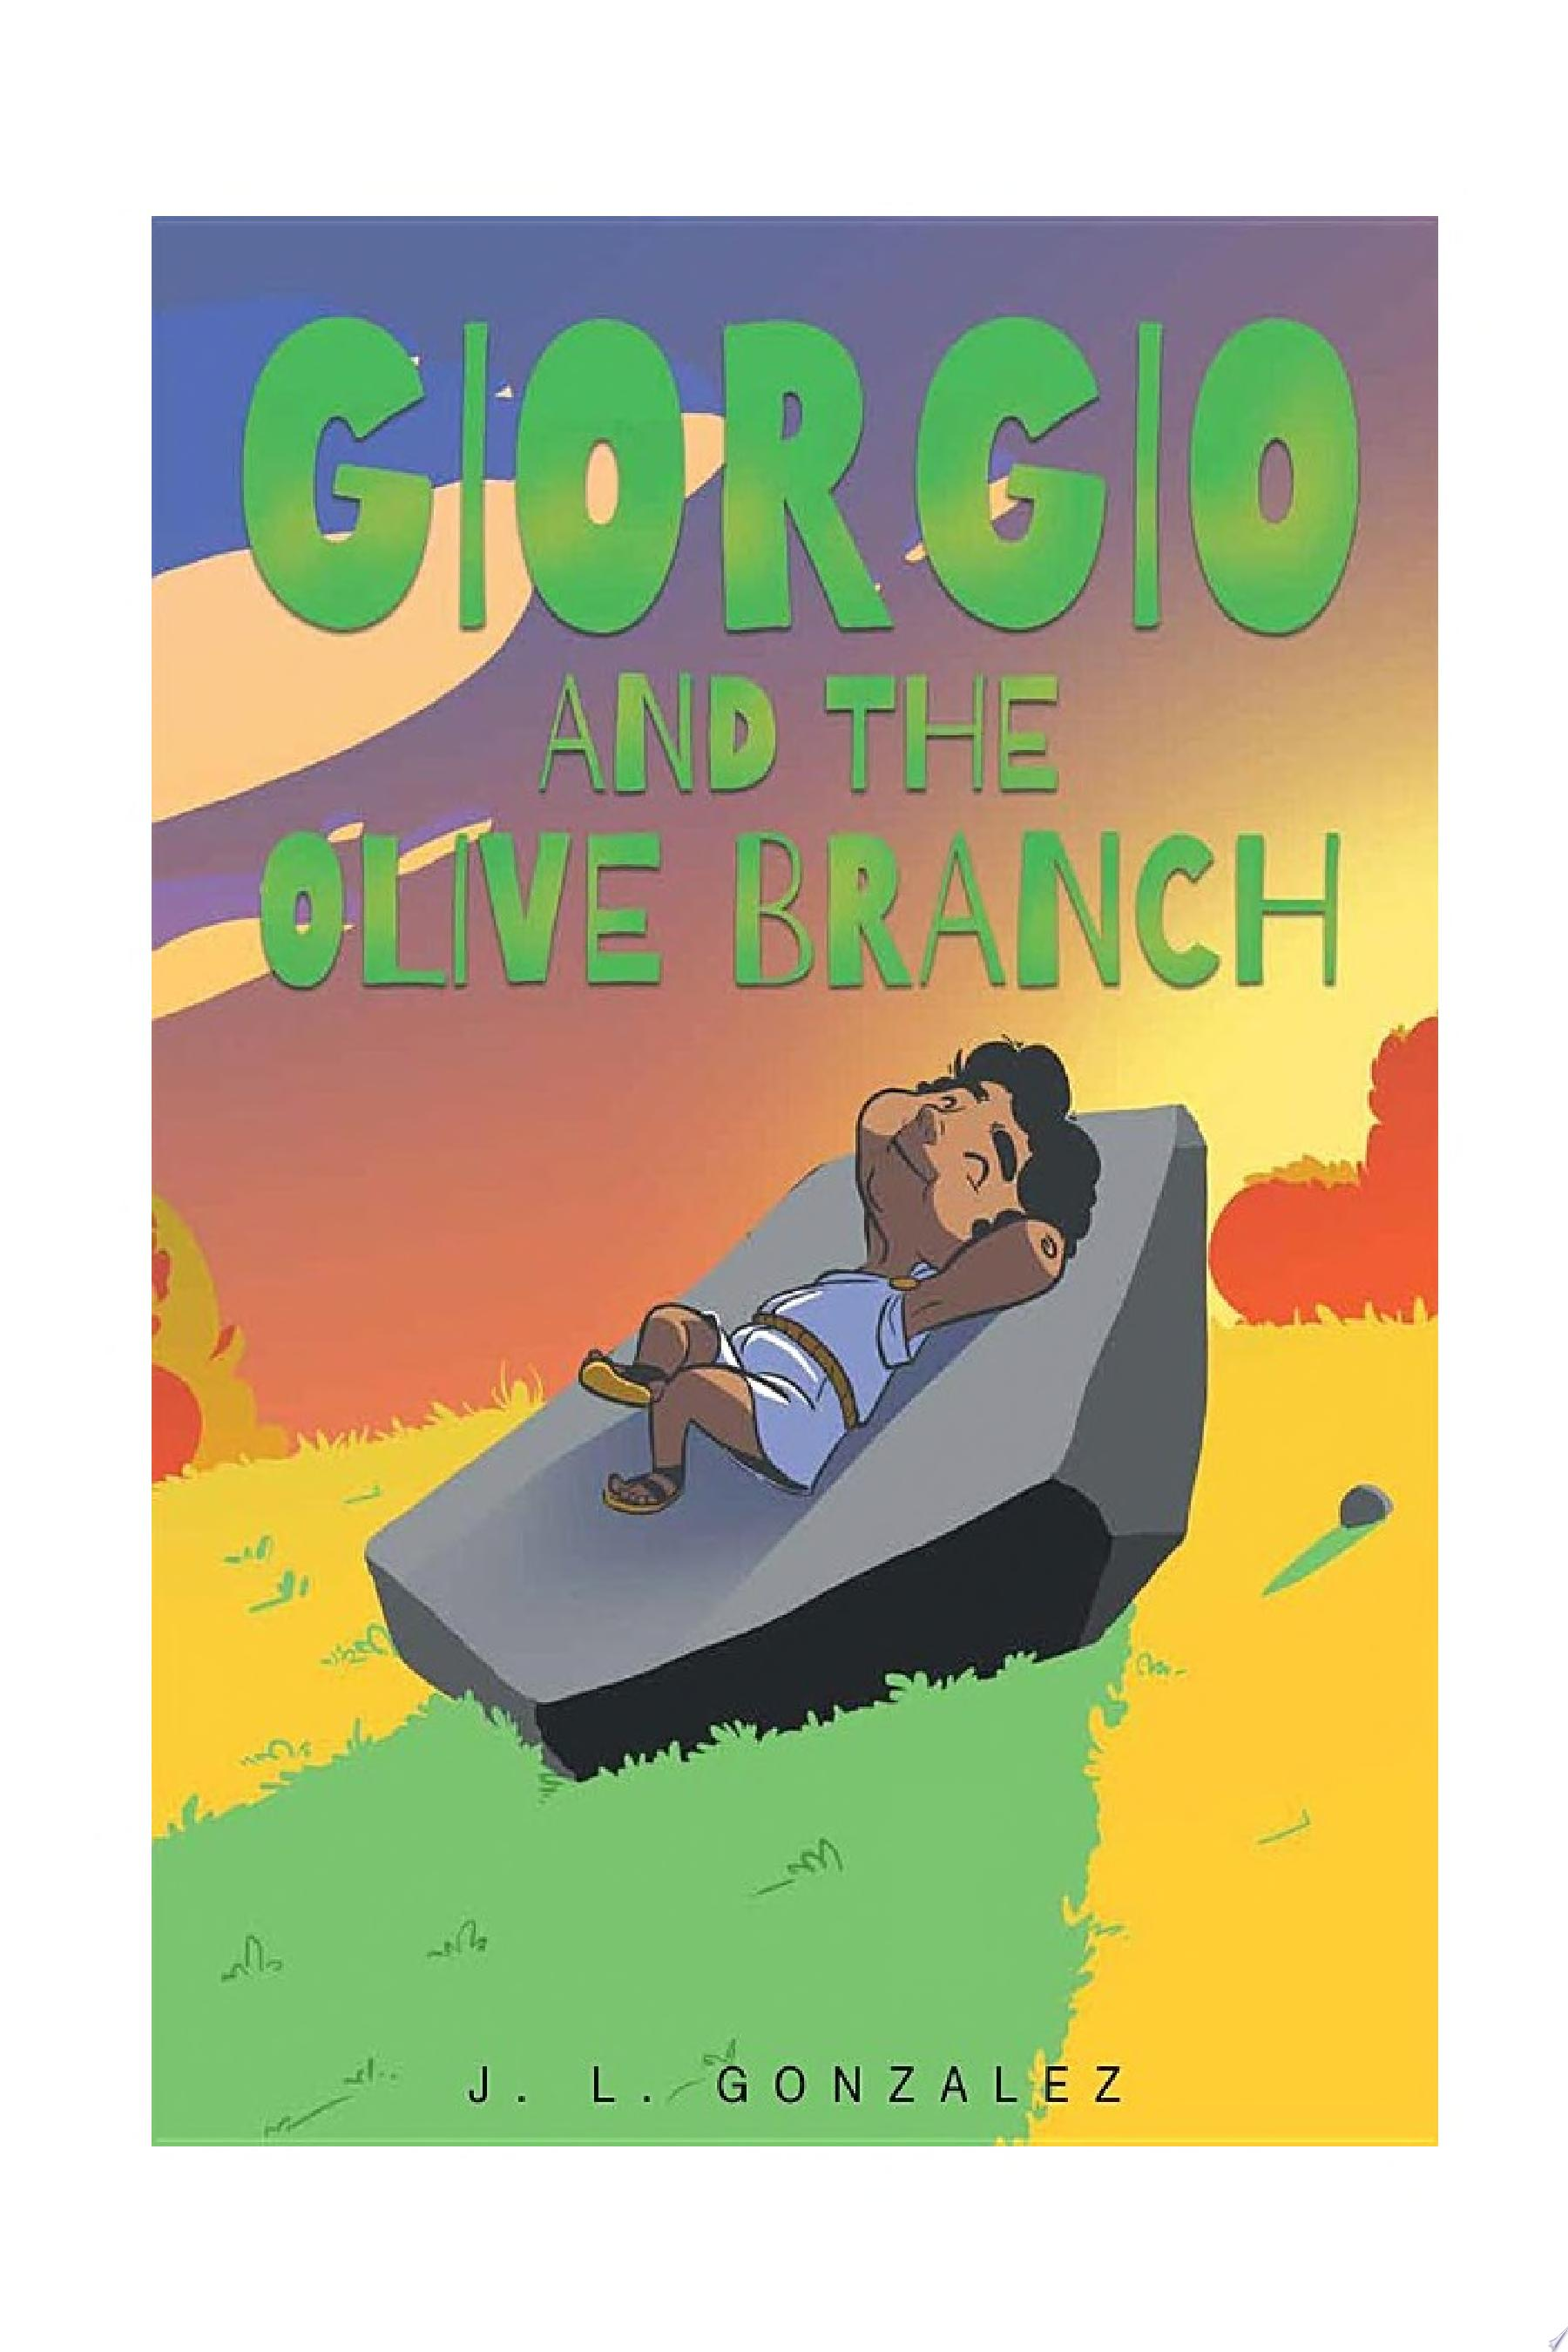 Giorgio and the Olive Branch